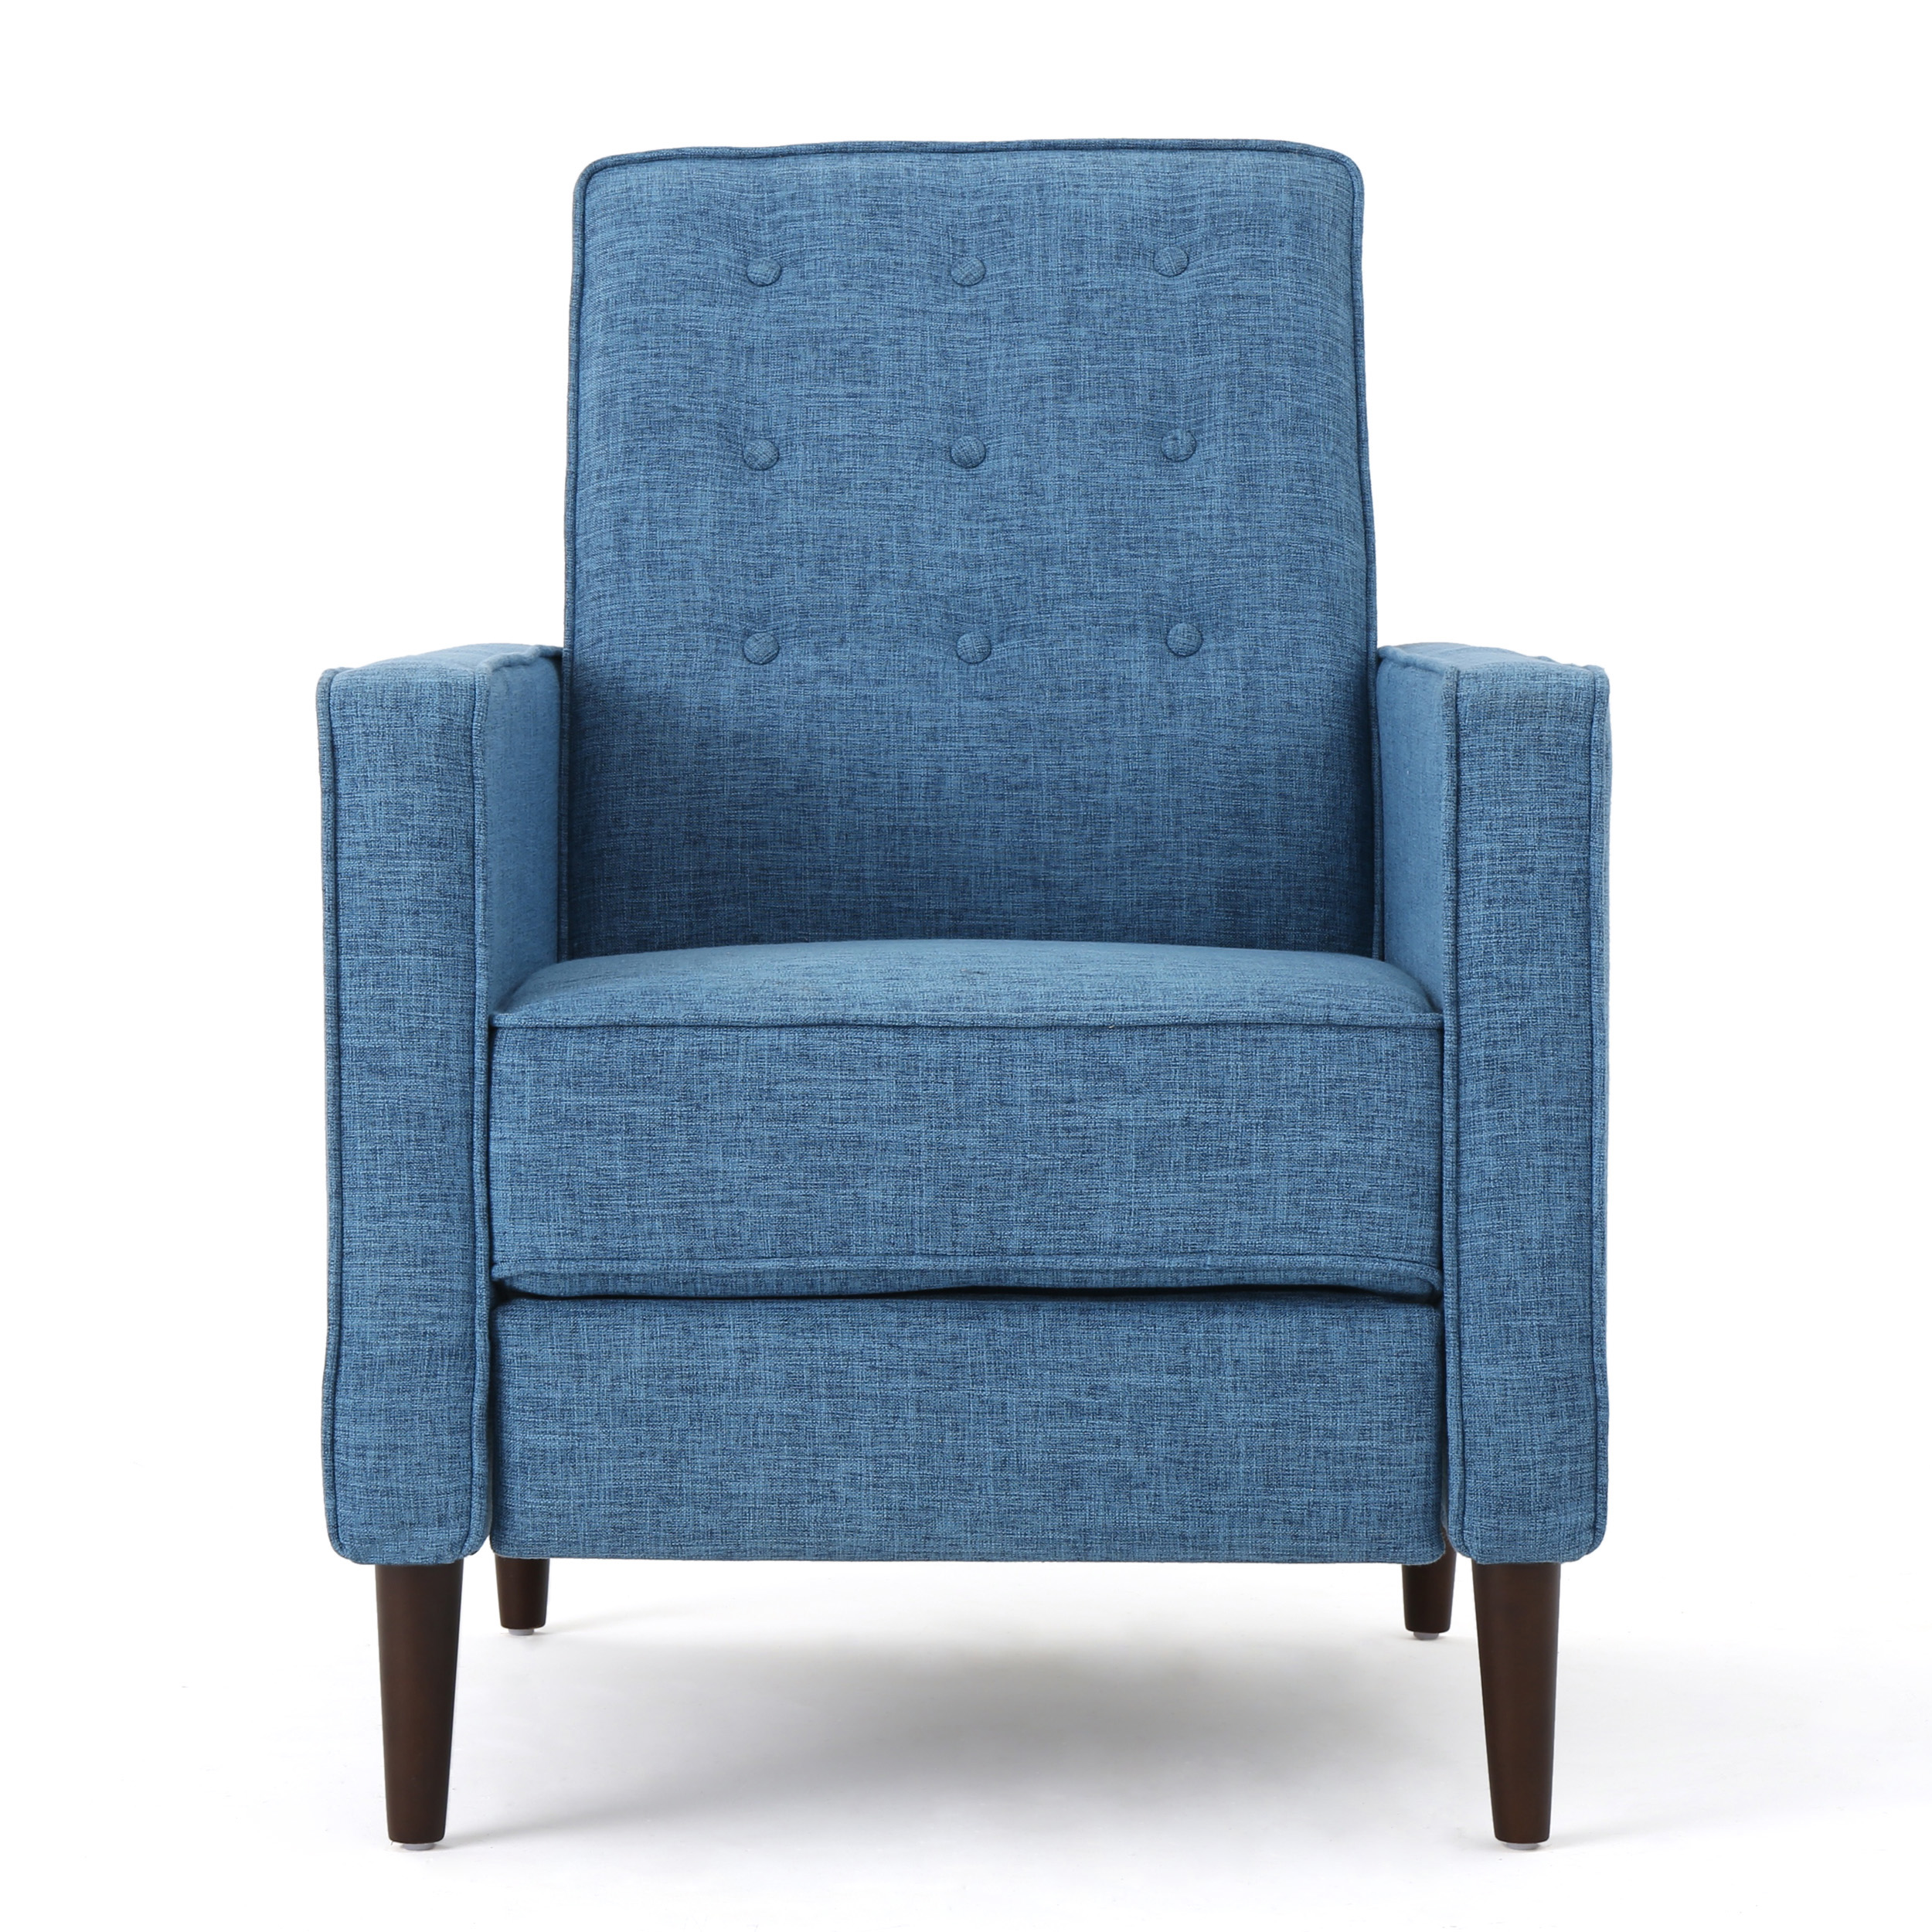 Macedonia Mid Century Modern Fabric Recliner, Muted Blue